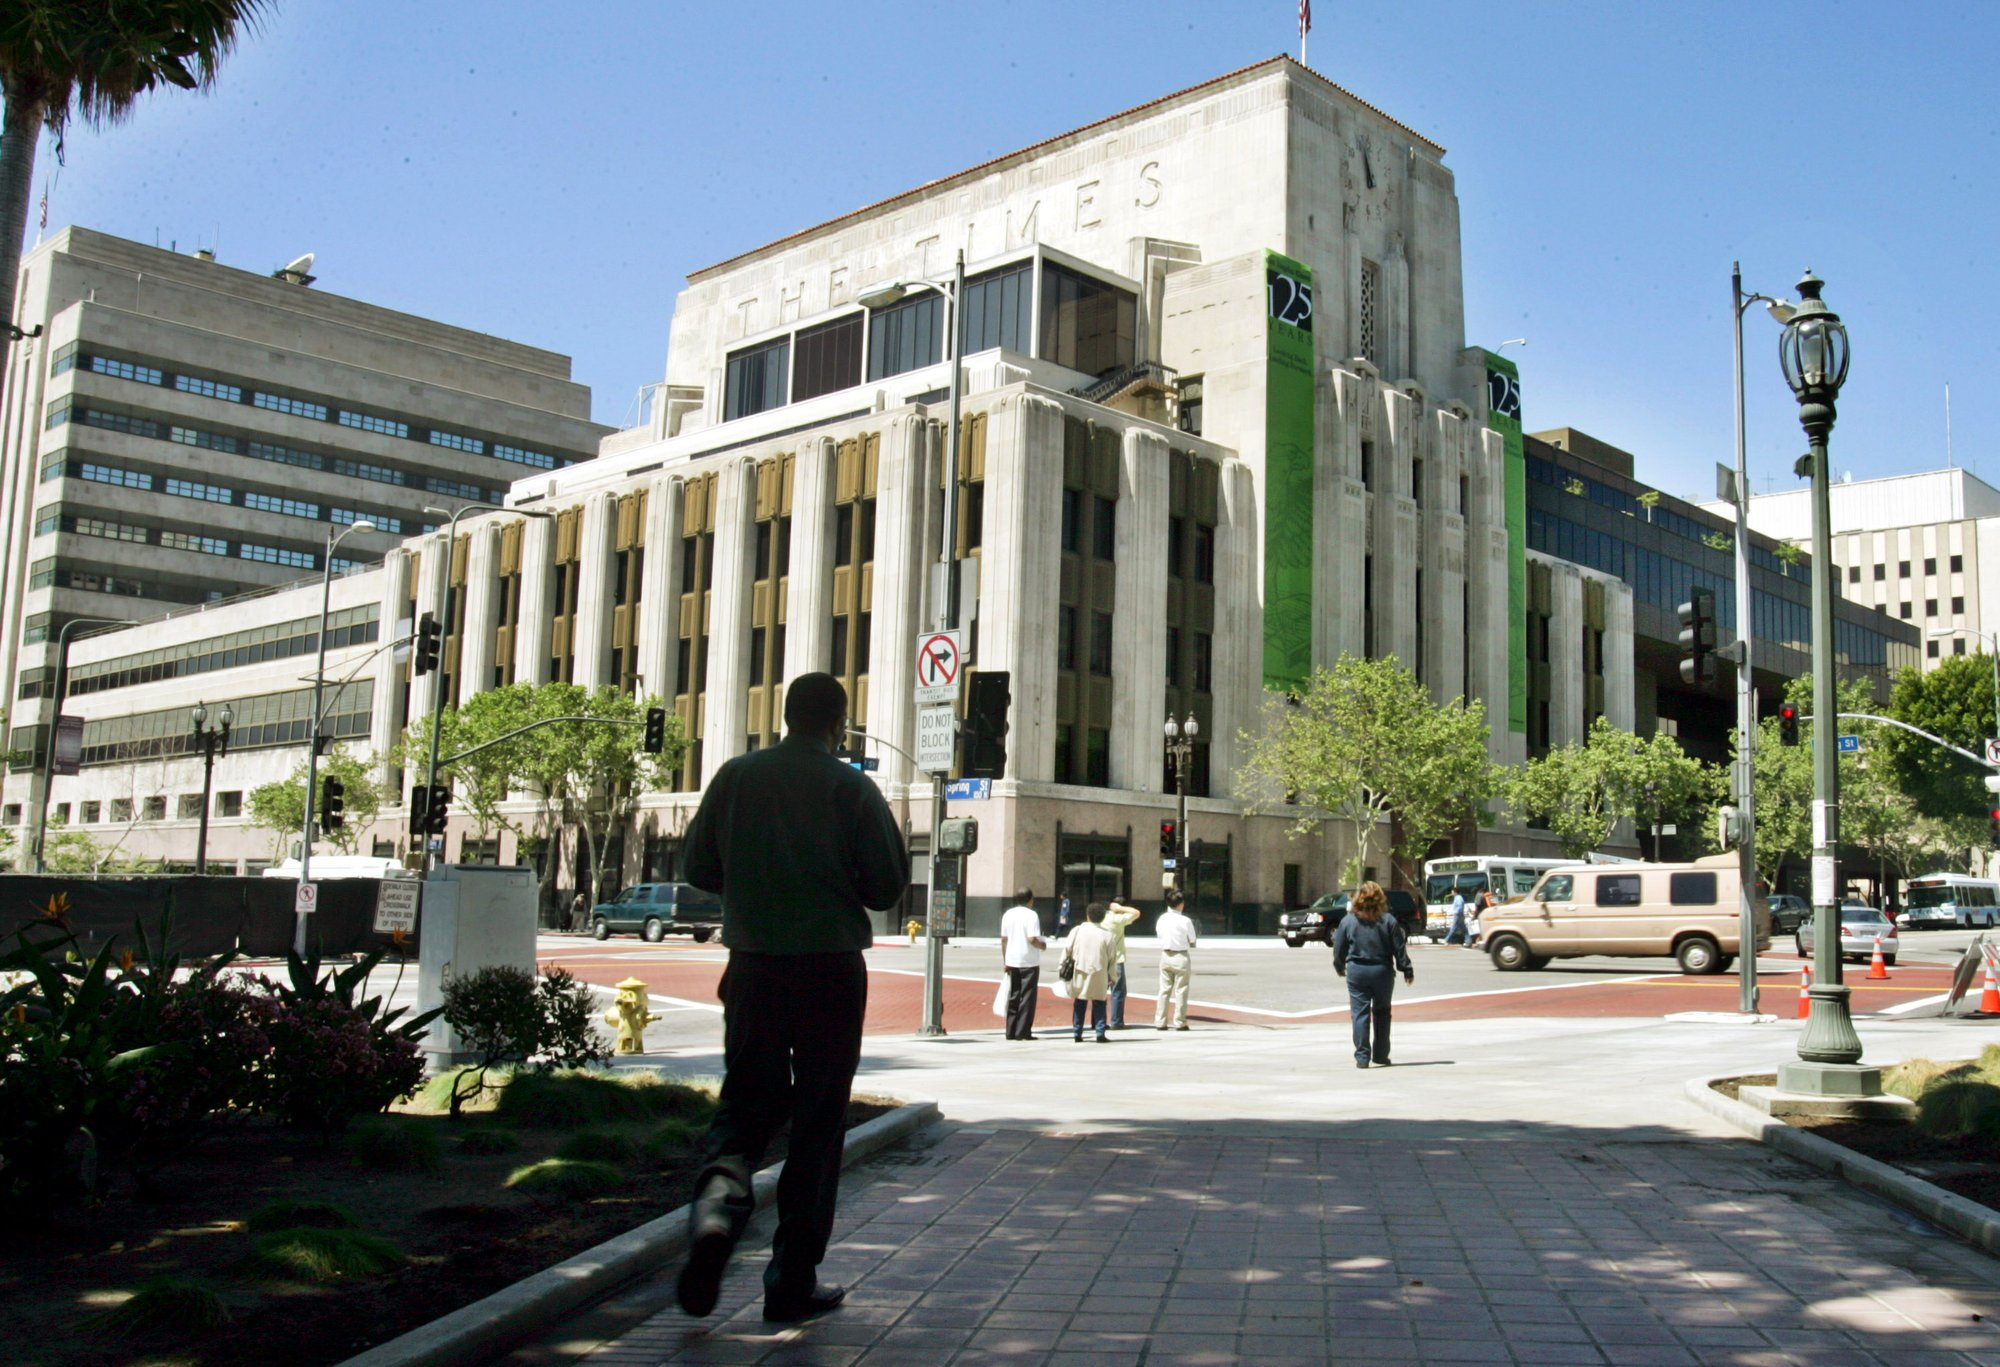 LA Times building briefly evacuated for suspicious packages